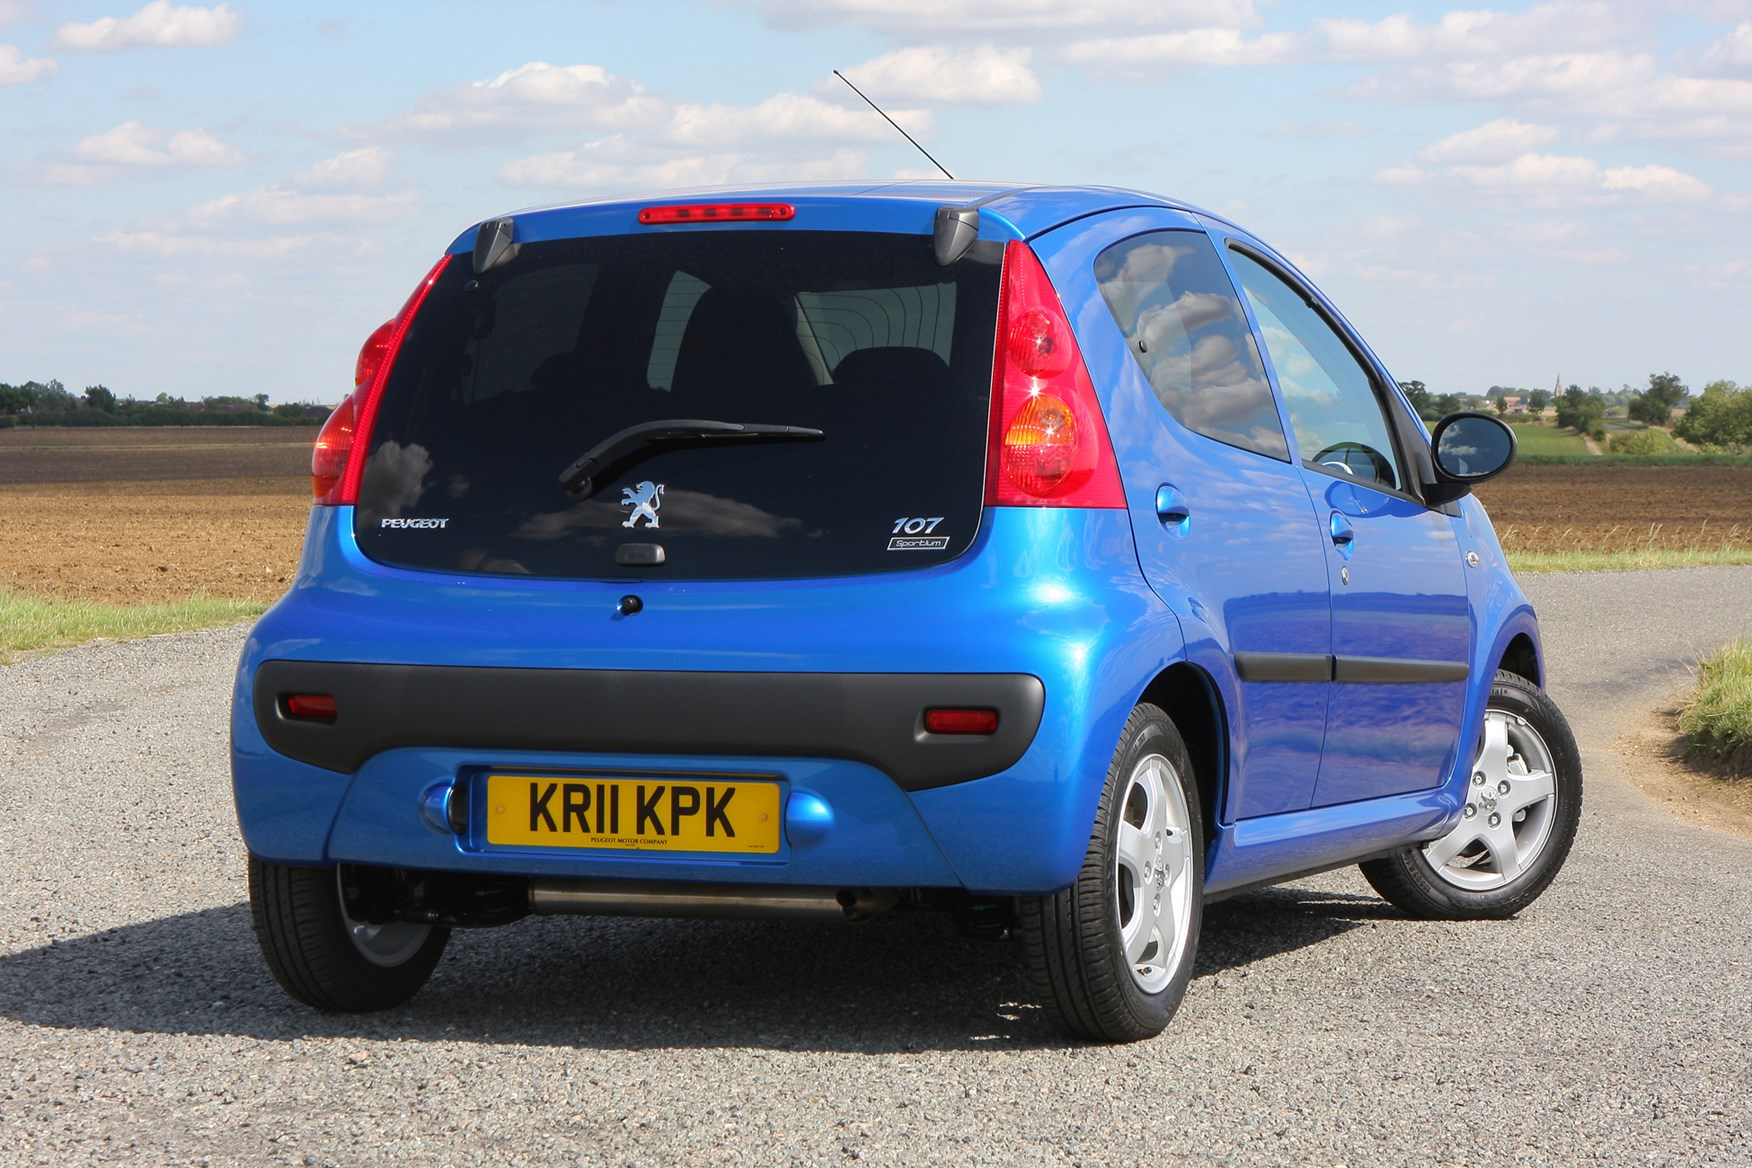 peugeot 107 hatchback (2005 - 2014) features, equipment and